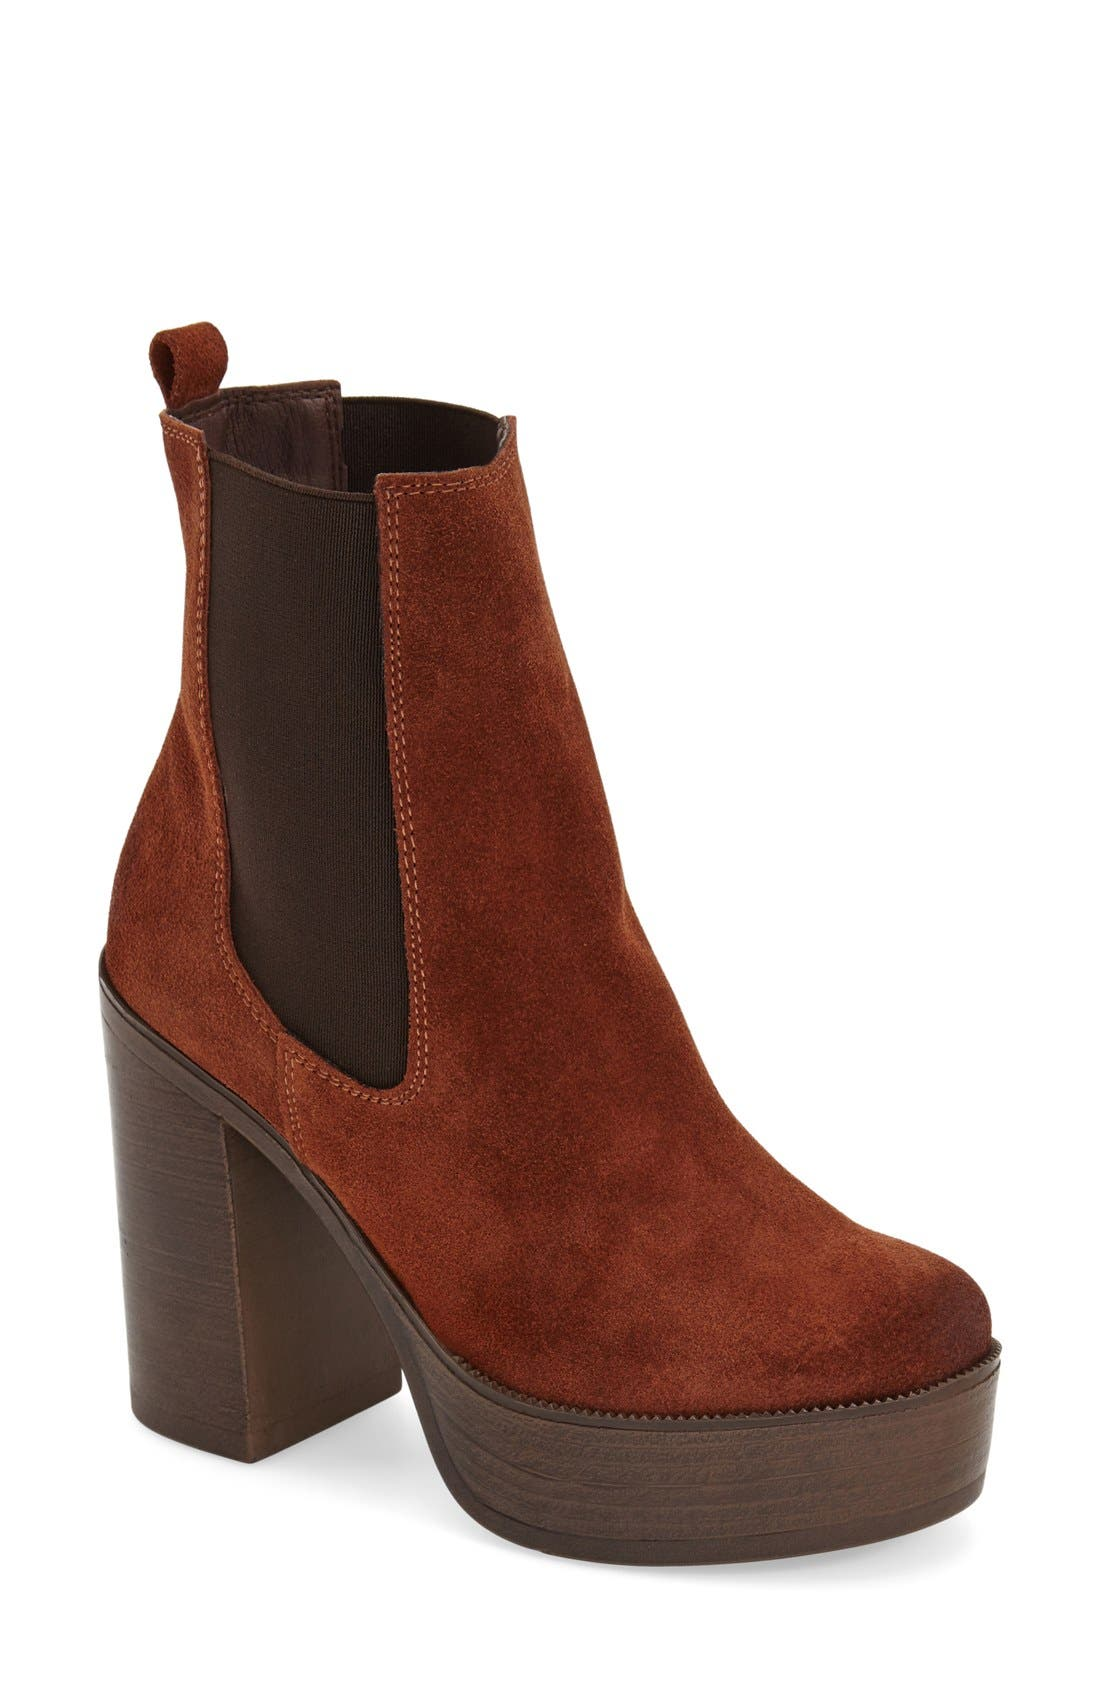 Alternate Image 1 Selected - Topshop 'Holly '70s' Chunky Heel Ankle Boot (Women)